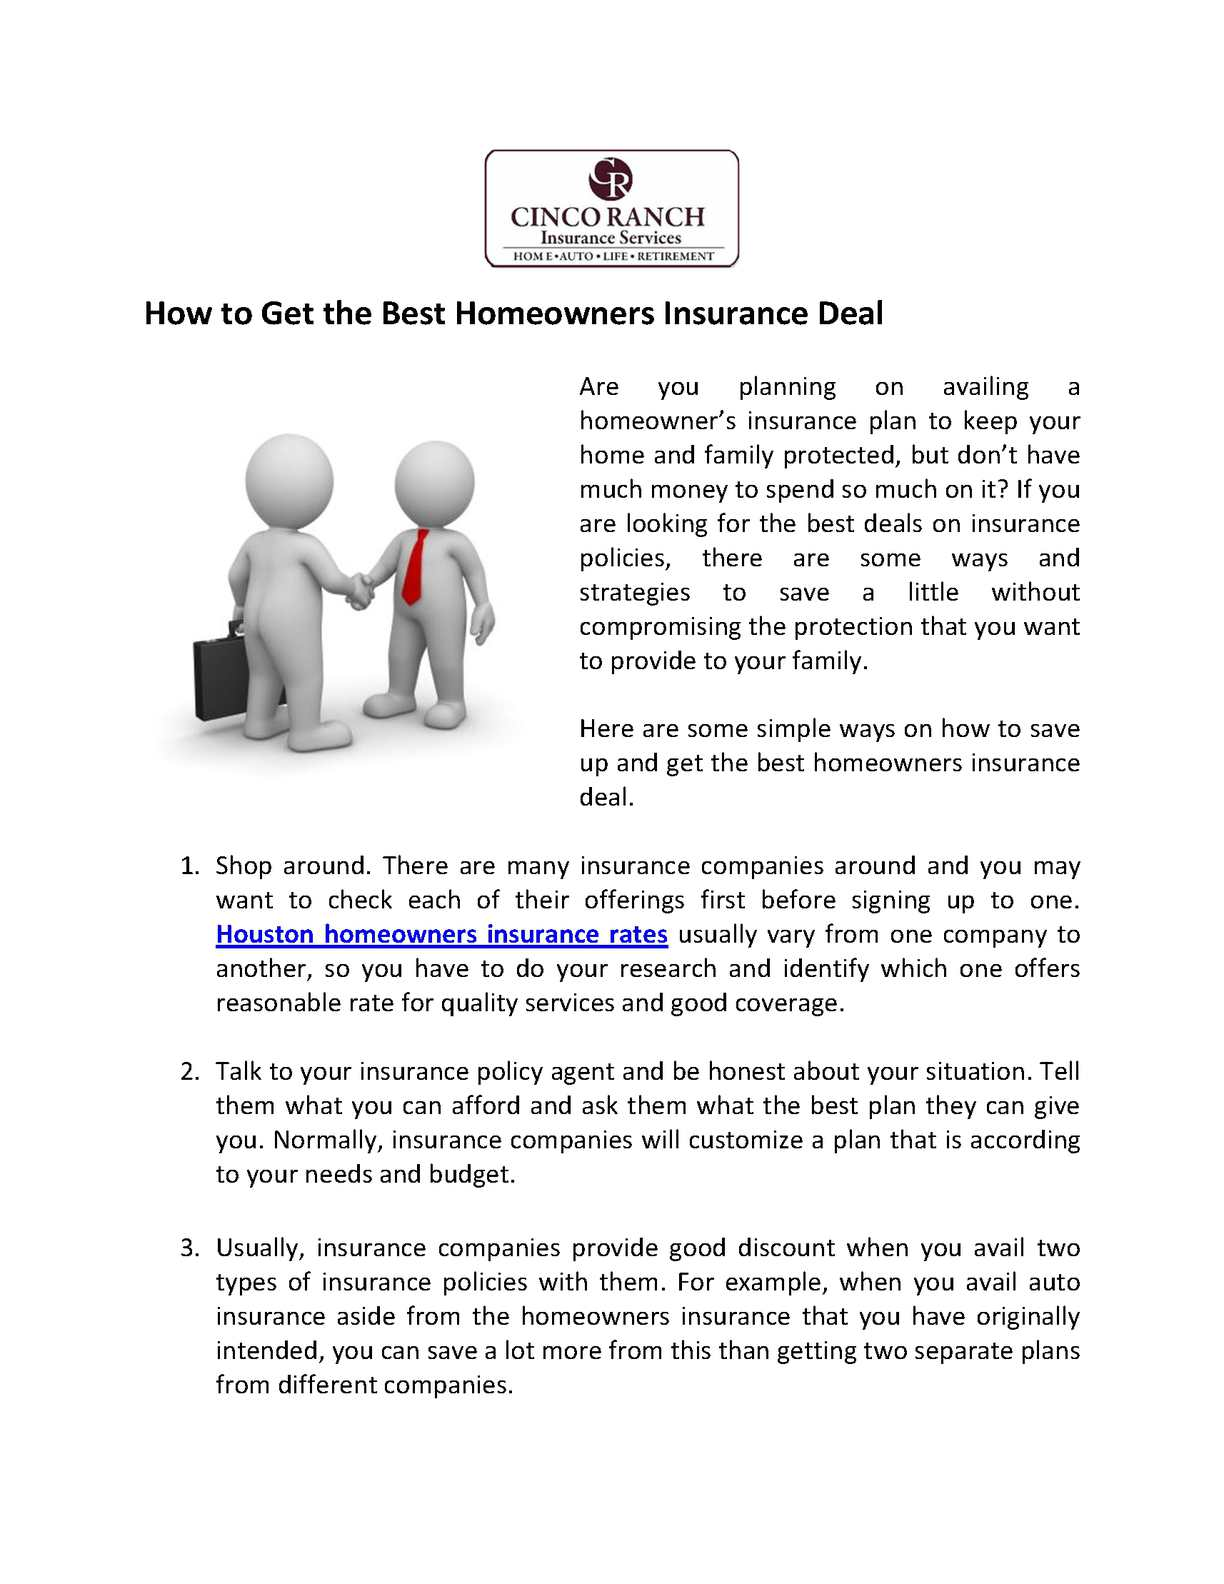 Homeowners Insurance Company >> Calameo How To Get The Best Homeowners Insurance Deal